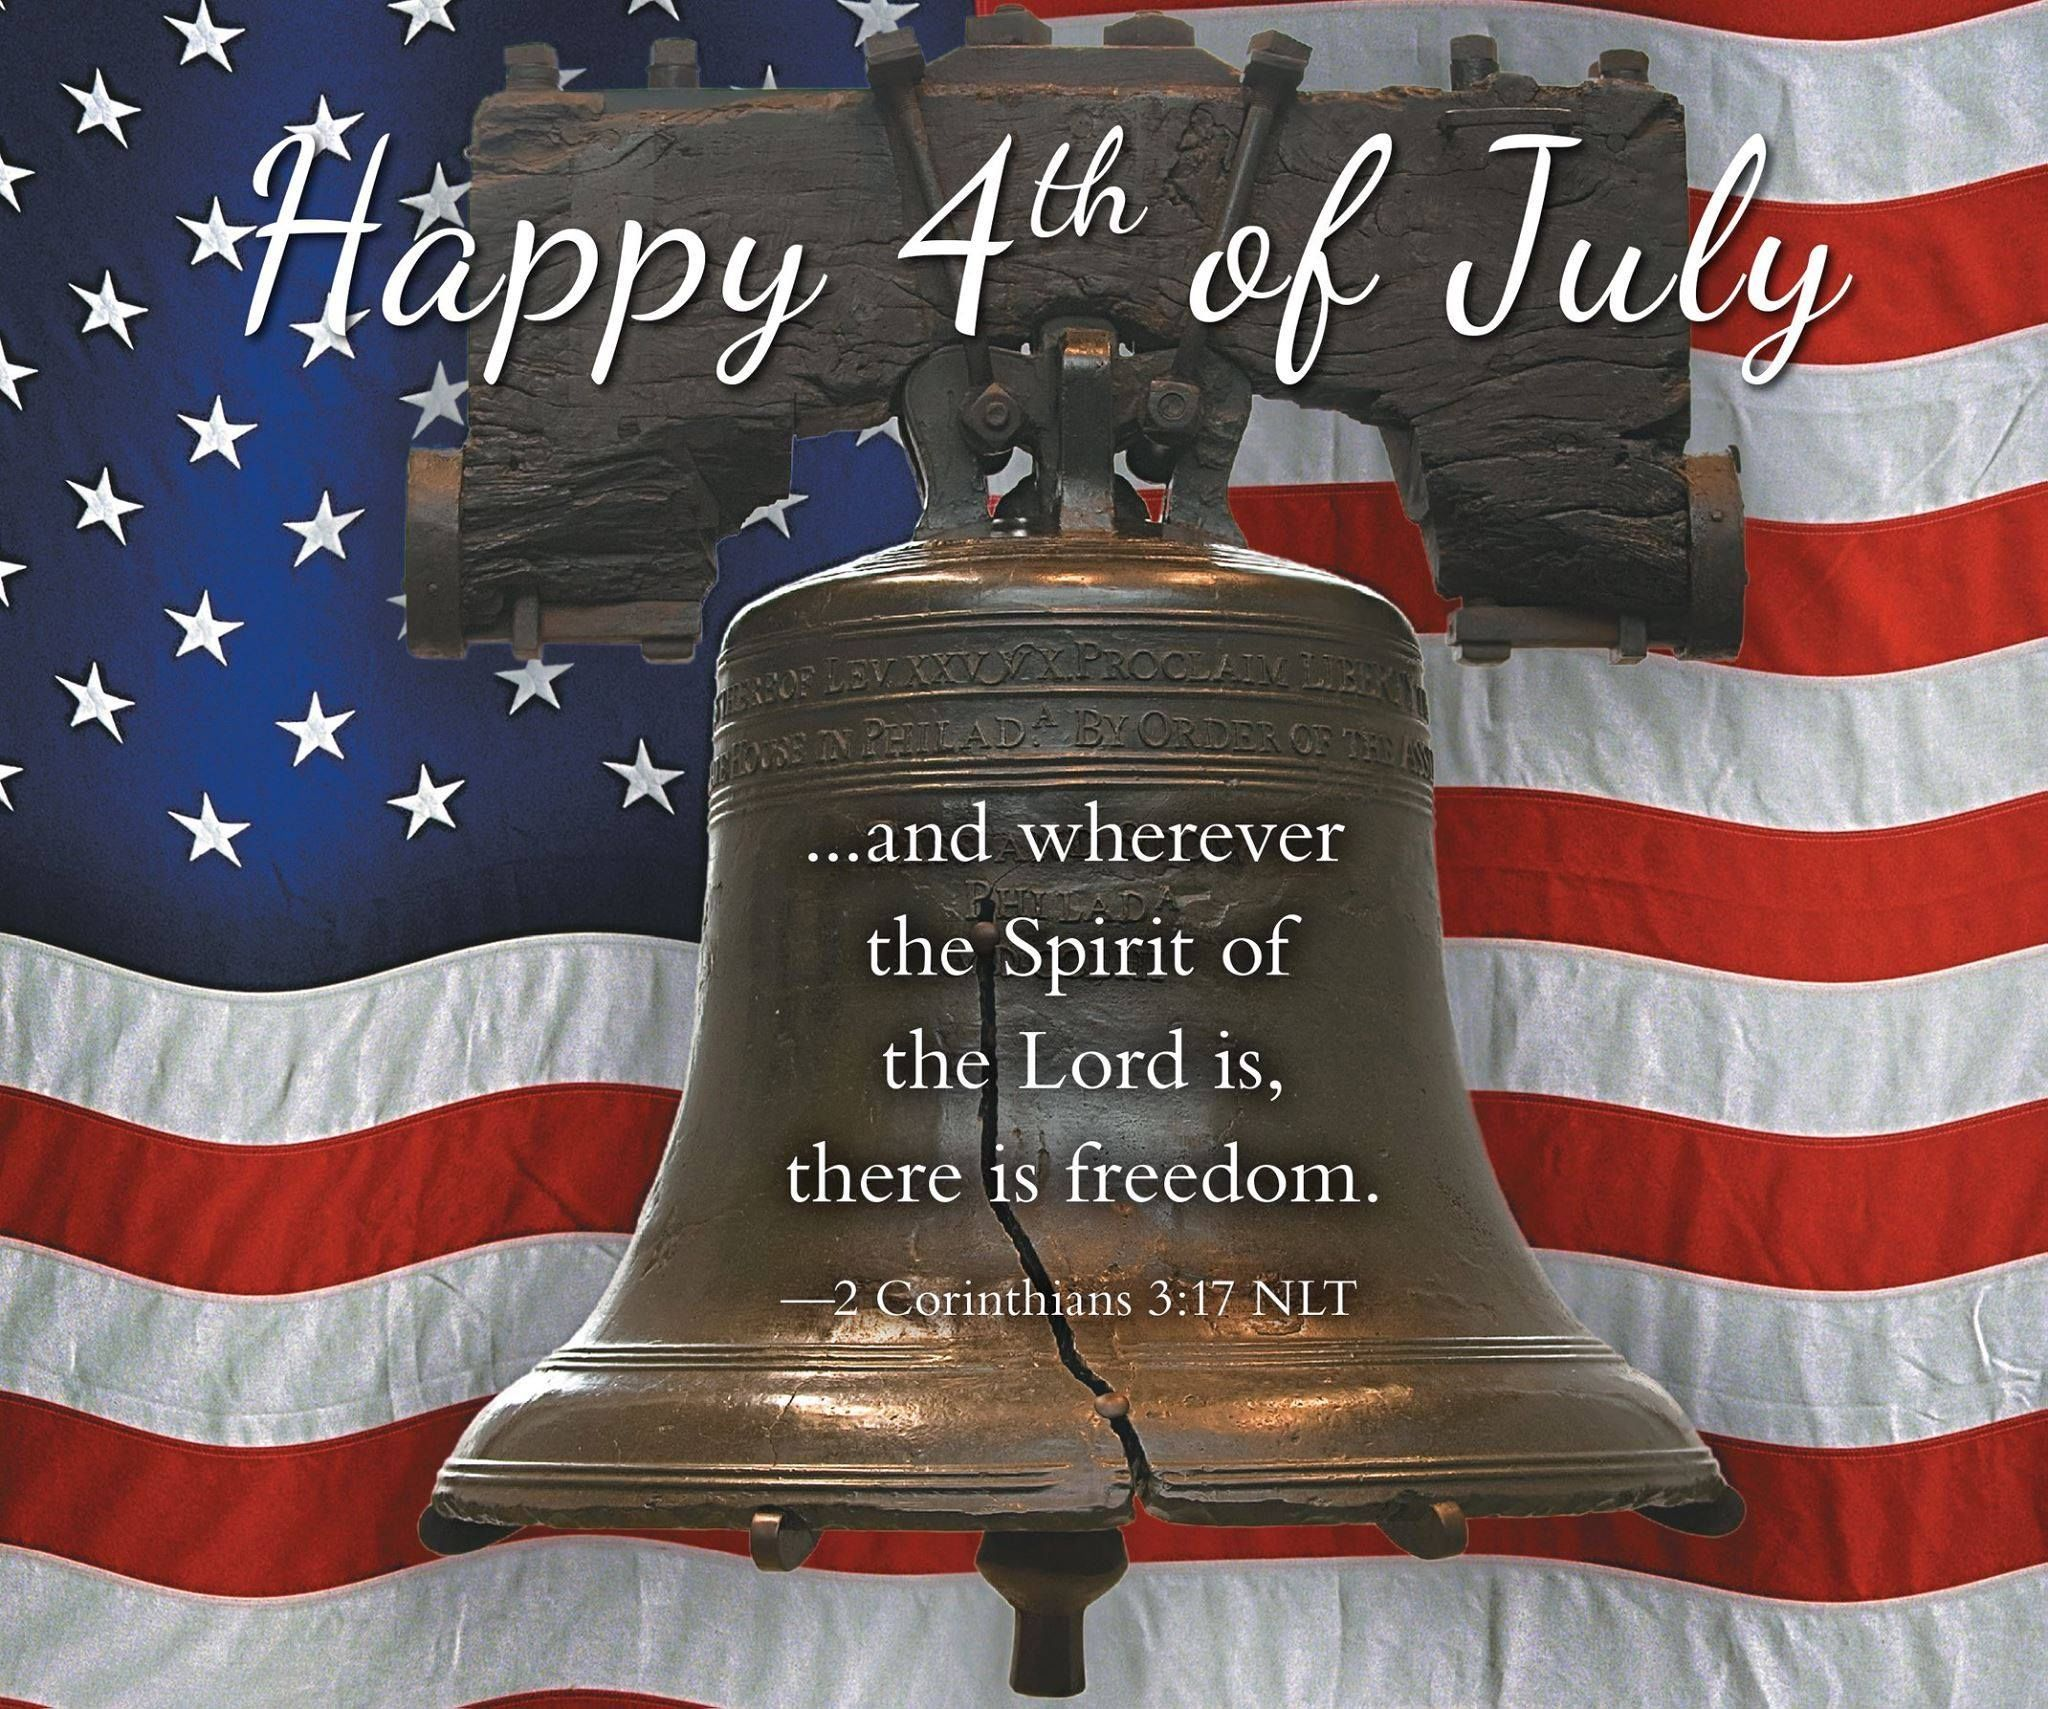 Religious Happy 4th Of Jul Quote 4th of july fourth of july happy.